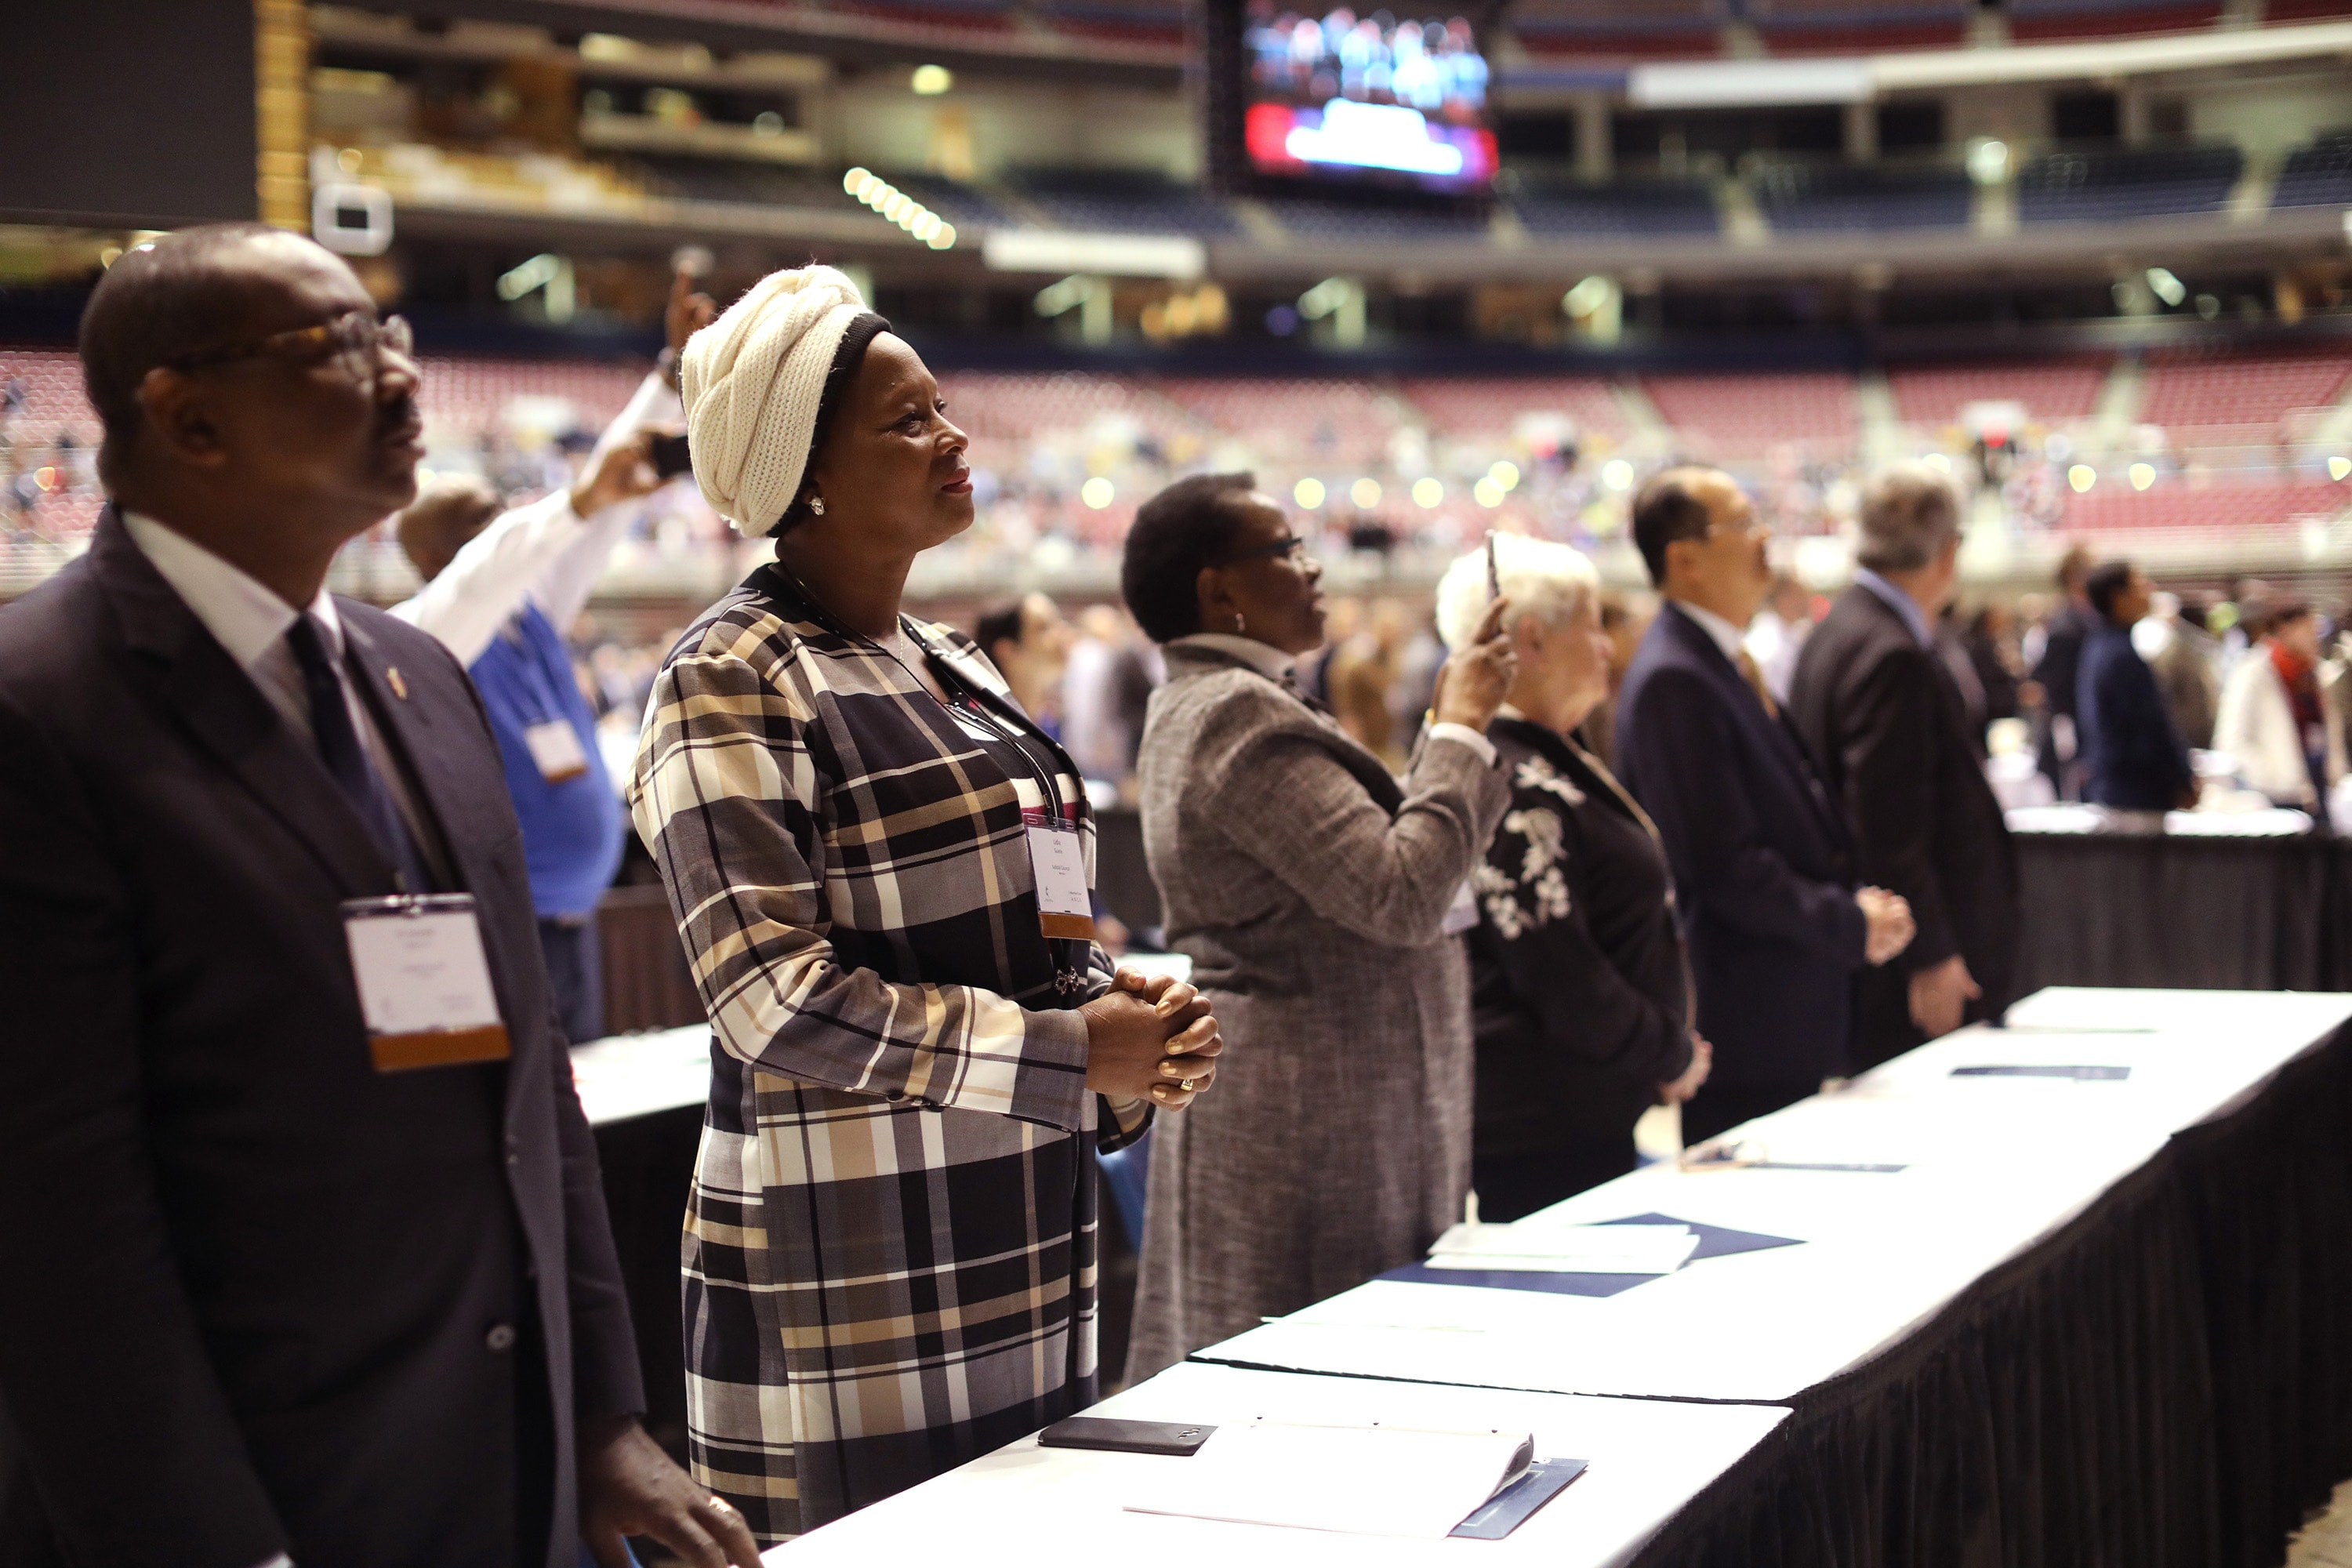 Members of the Judicial Council participate in the Feb. 23 morning of prayer at the 2019 Special Session of the United Methodist General Conference in St. Louis. File photo by Kathleen Barry, UMNS.